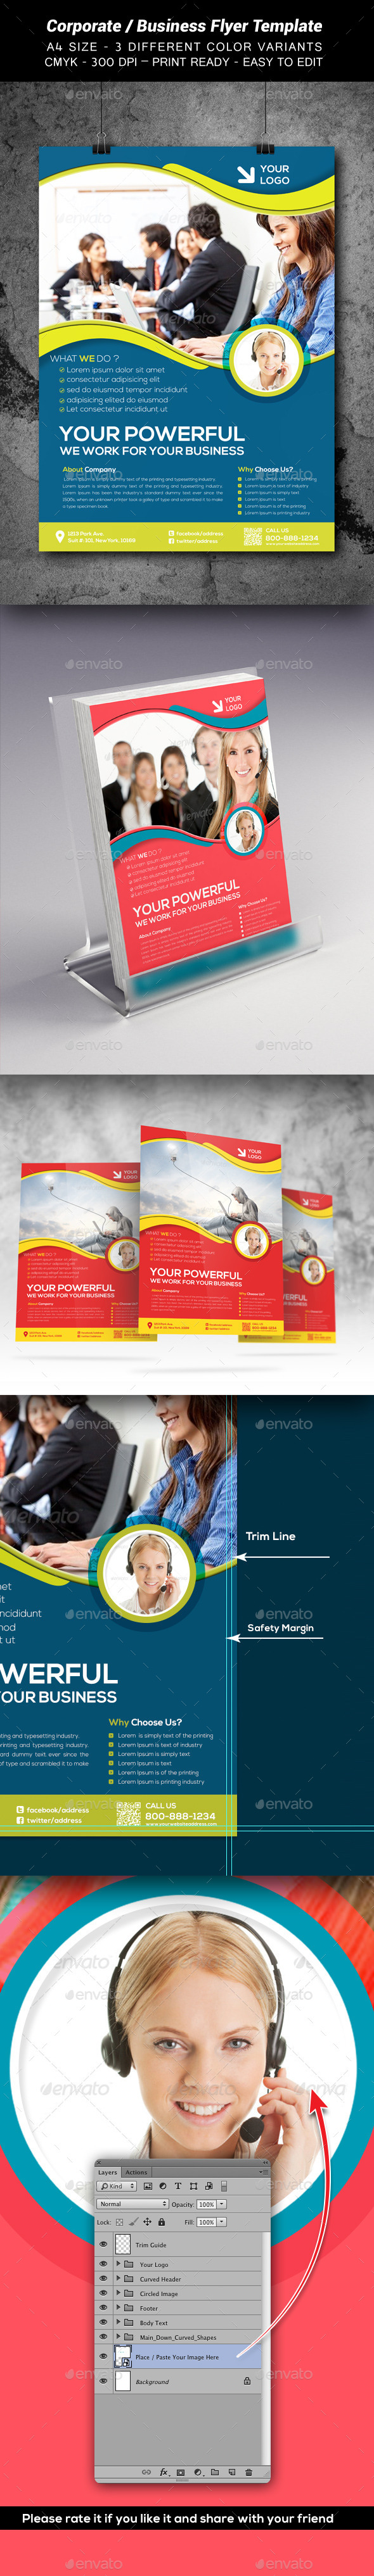 Corporate / Business Flyer Template3 - Print Templates